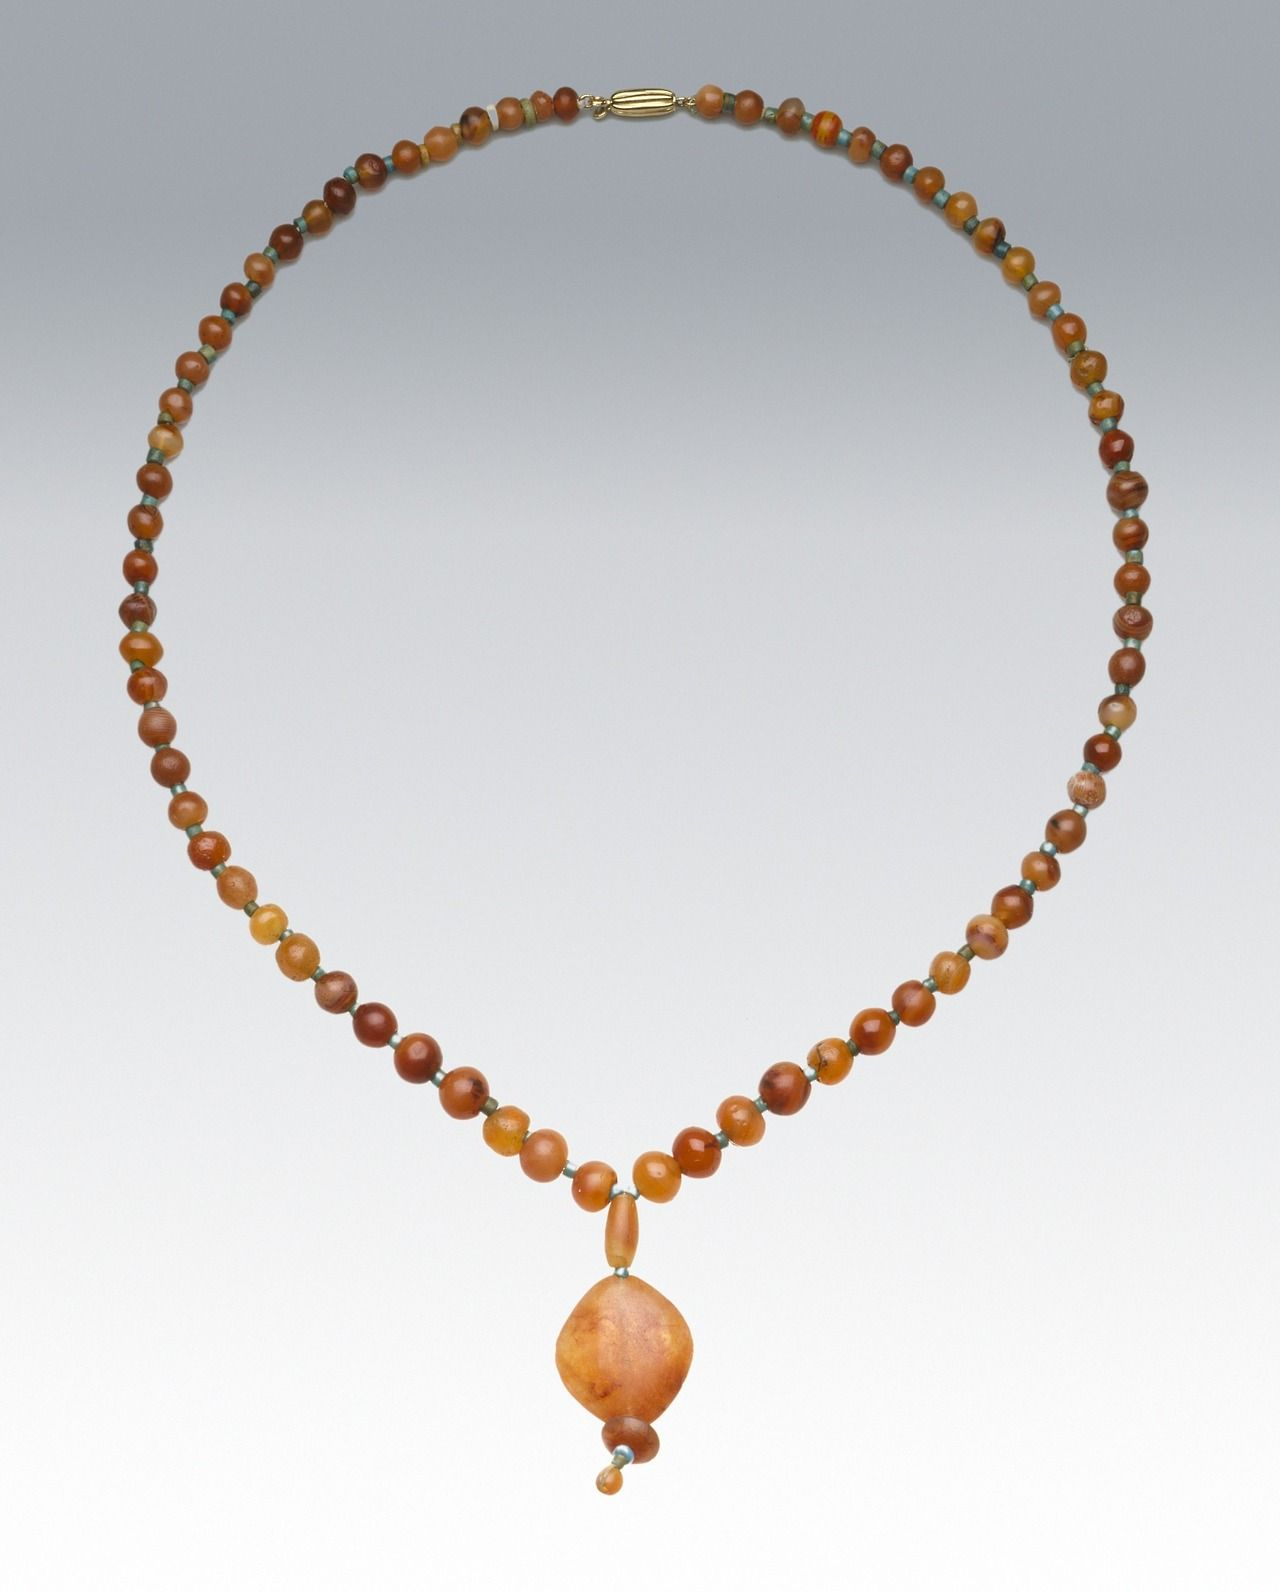 Egyptian necklace, carnelian and faience, 664-525 BC